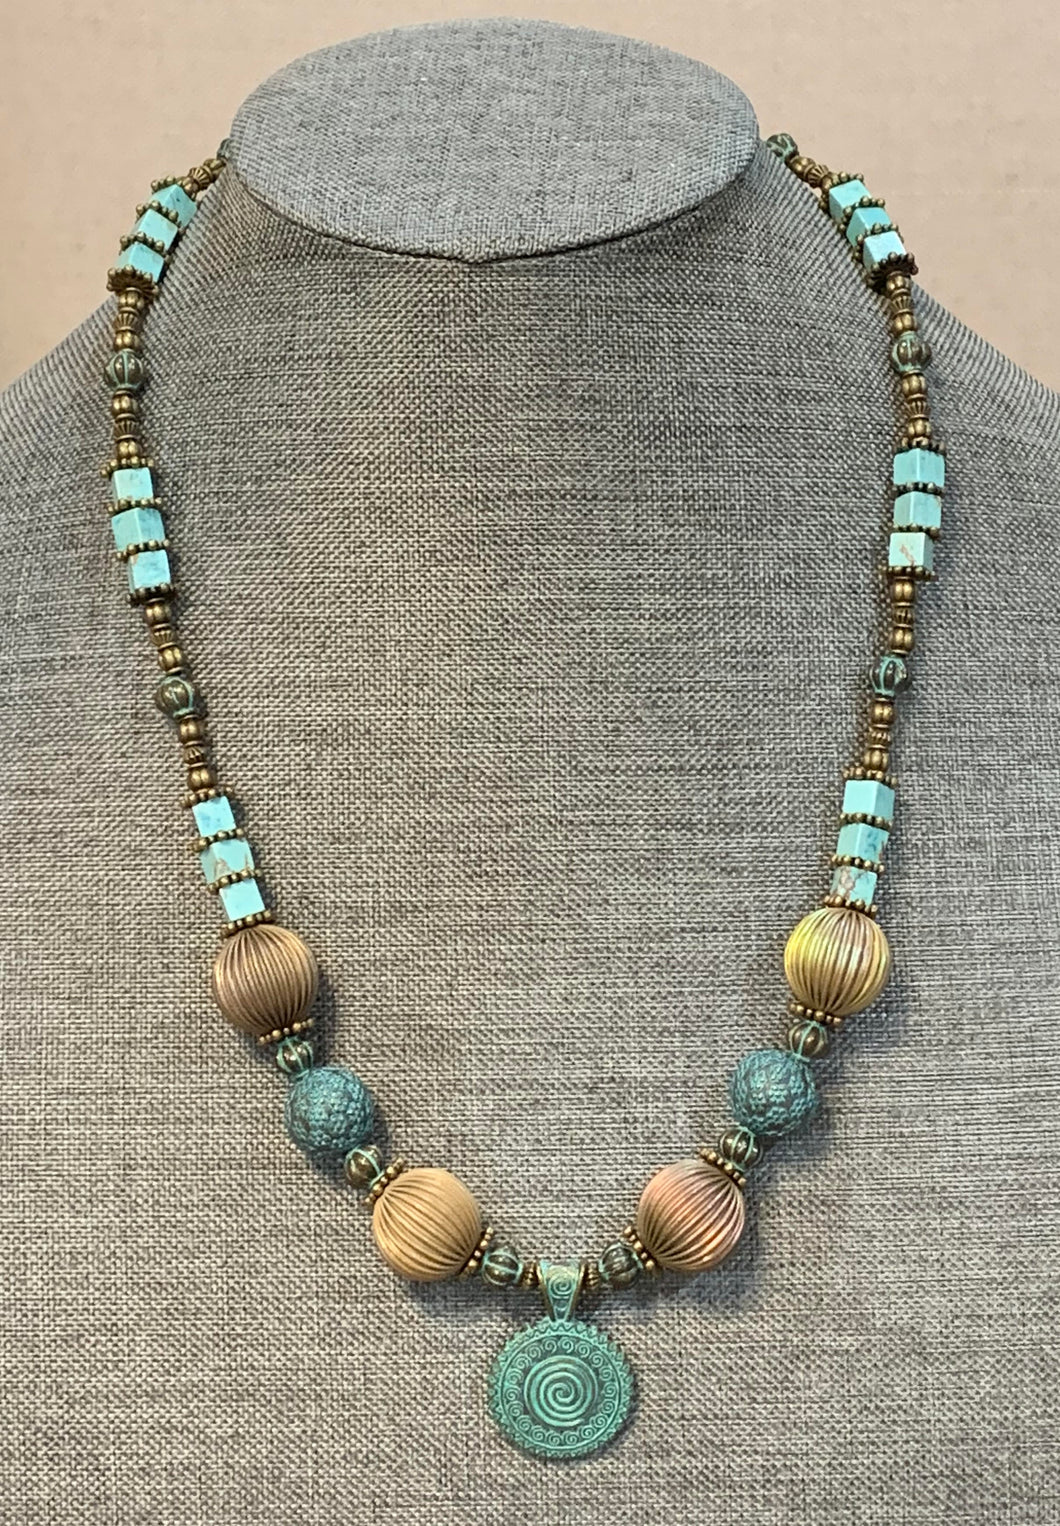 Brass with Aqua Patina Necklace & Matching Earrings